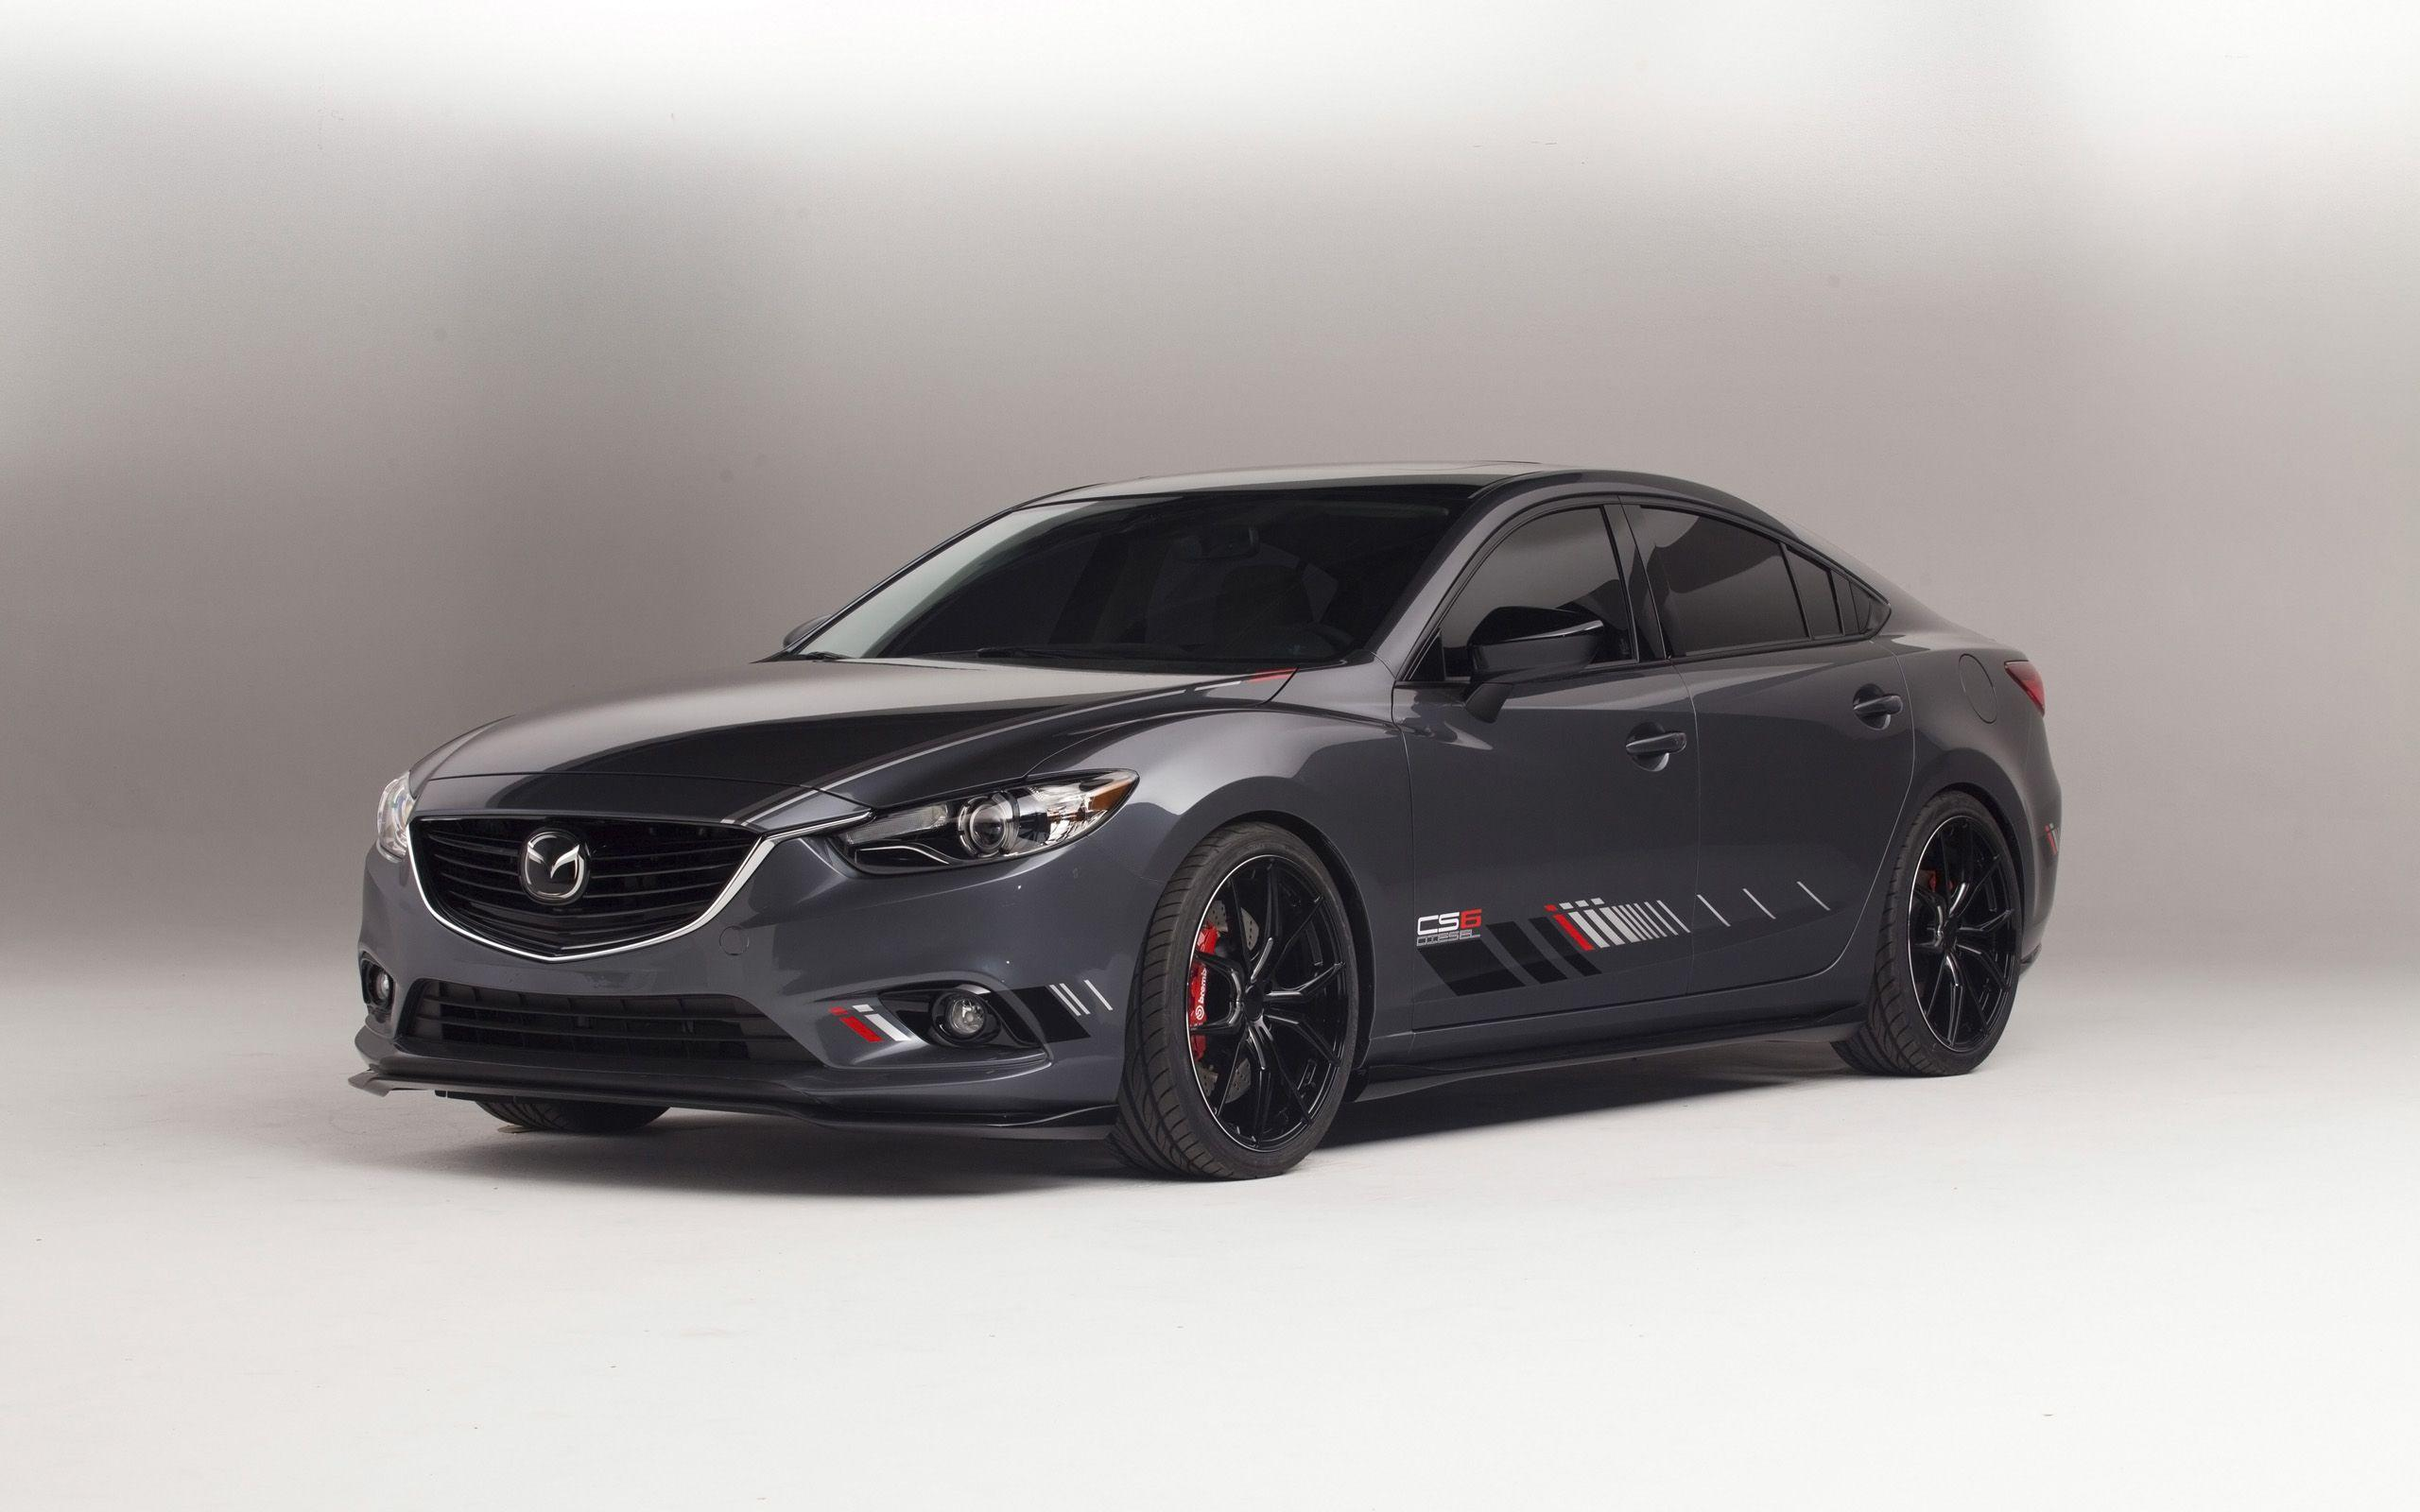 2013 Mazda Club Sport 6 Wallpaper | HD Car Wallpapers